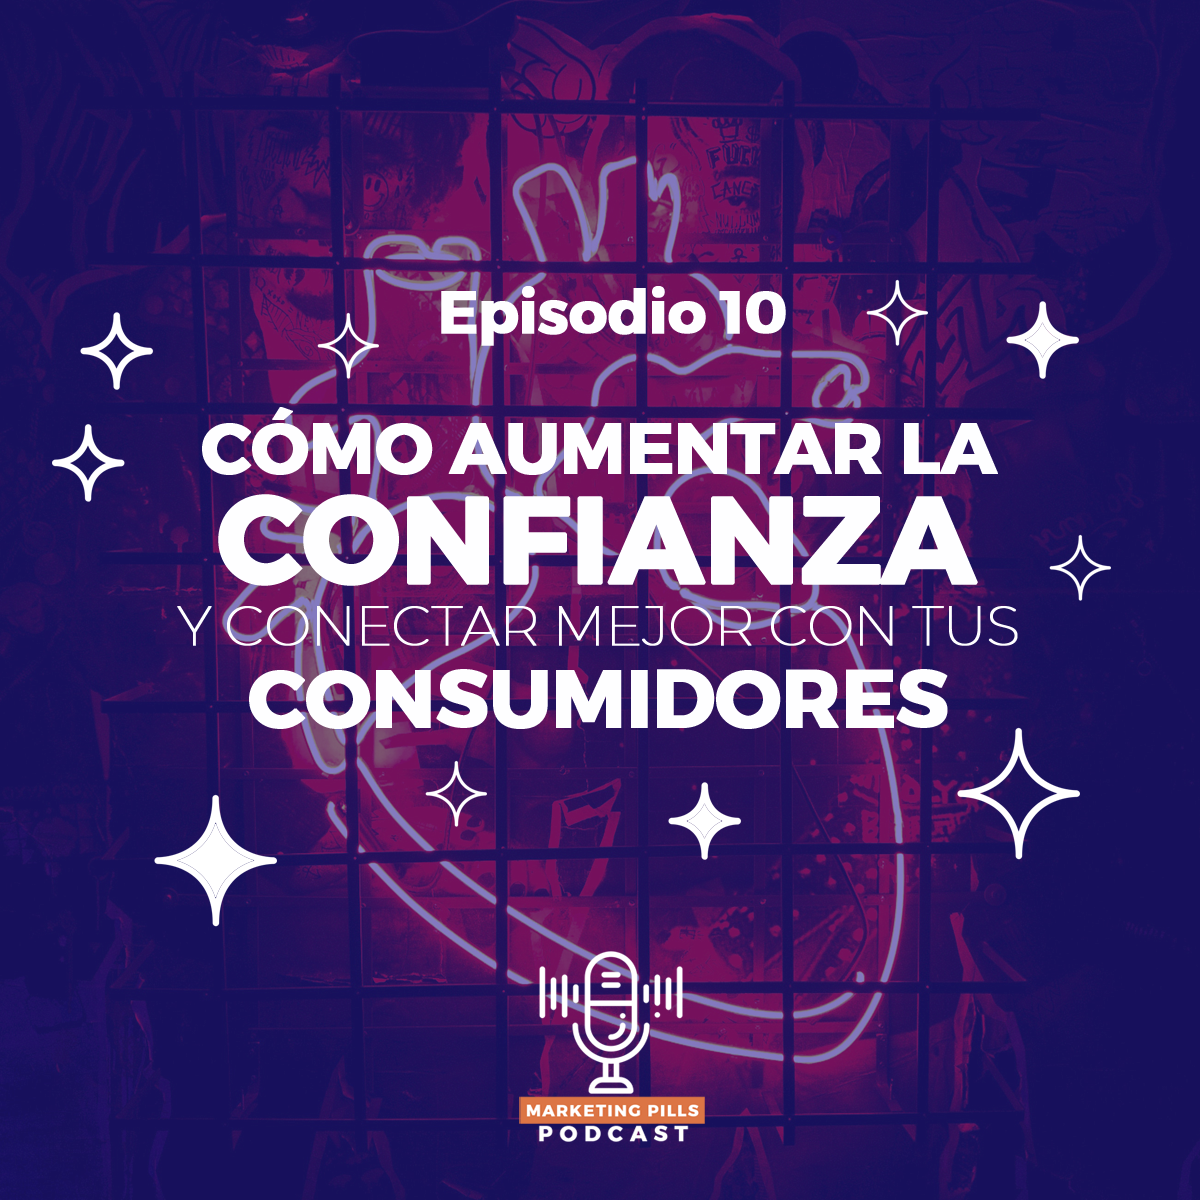 http://marianasalas.com/wp-content/uploads/2019/05/EPISODIO10.png